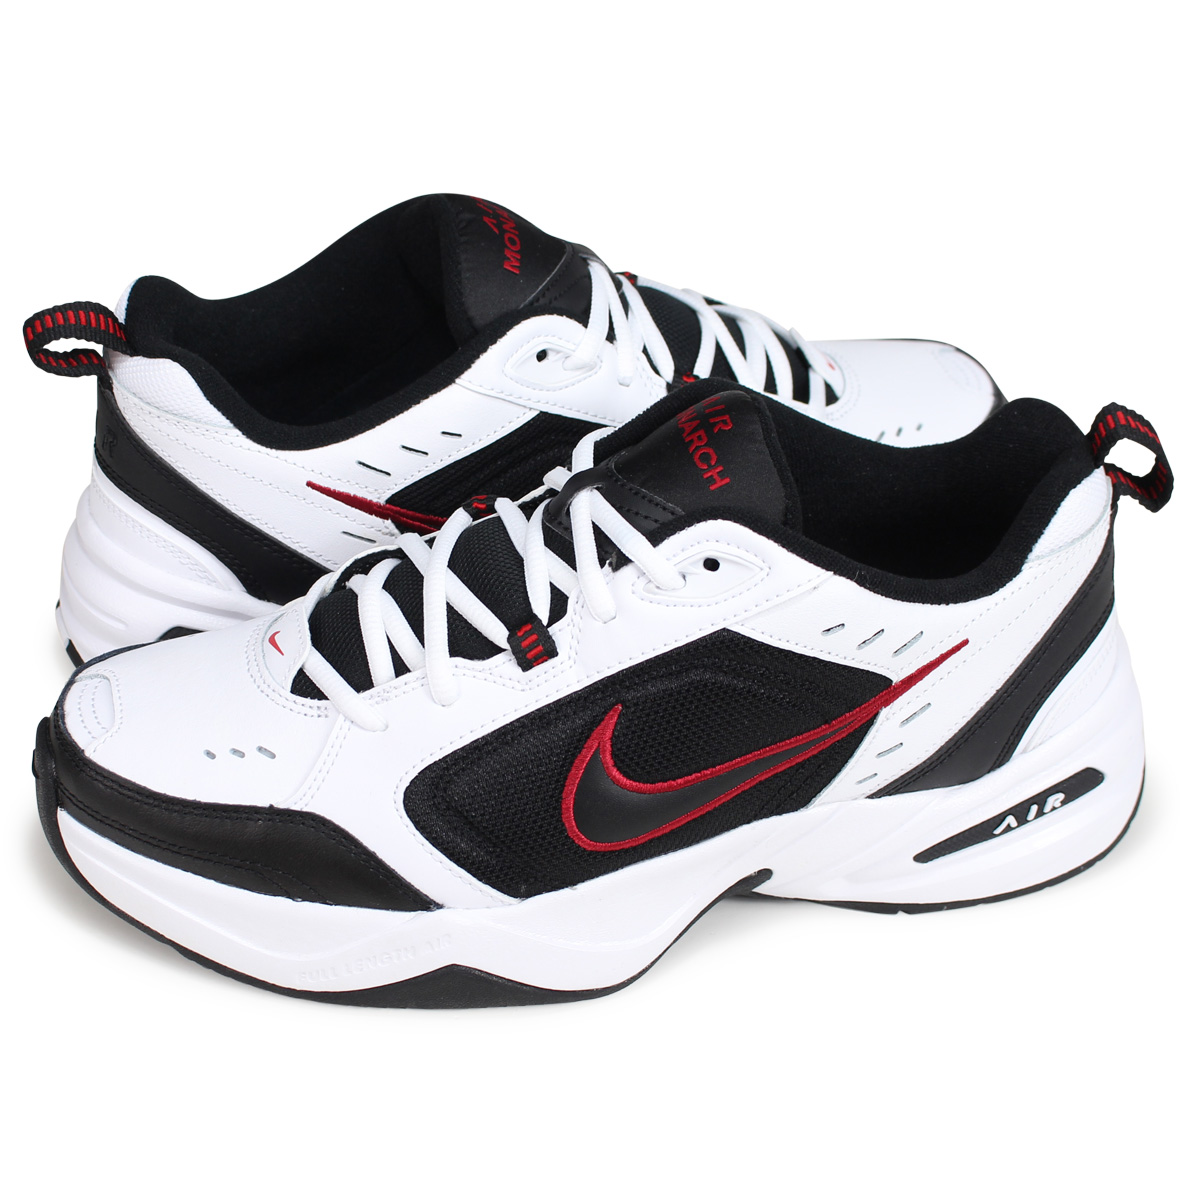 Nike NIKE エアモナーク 4 sneakers men AIR MONARCH IV DAD SHOES ダッドシューズ 415,445 102 white white